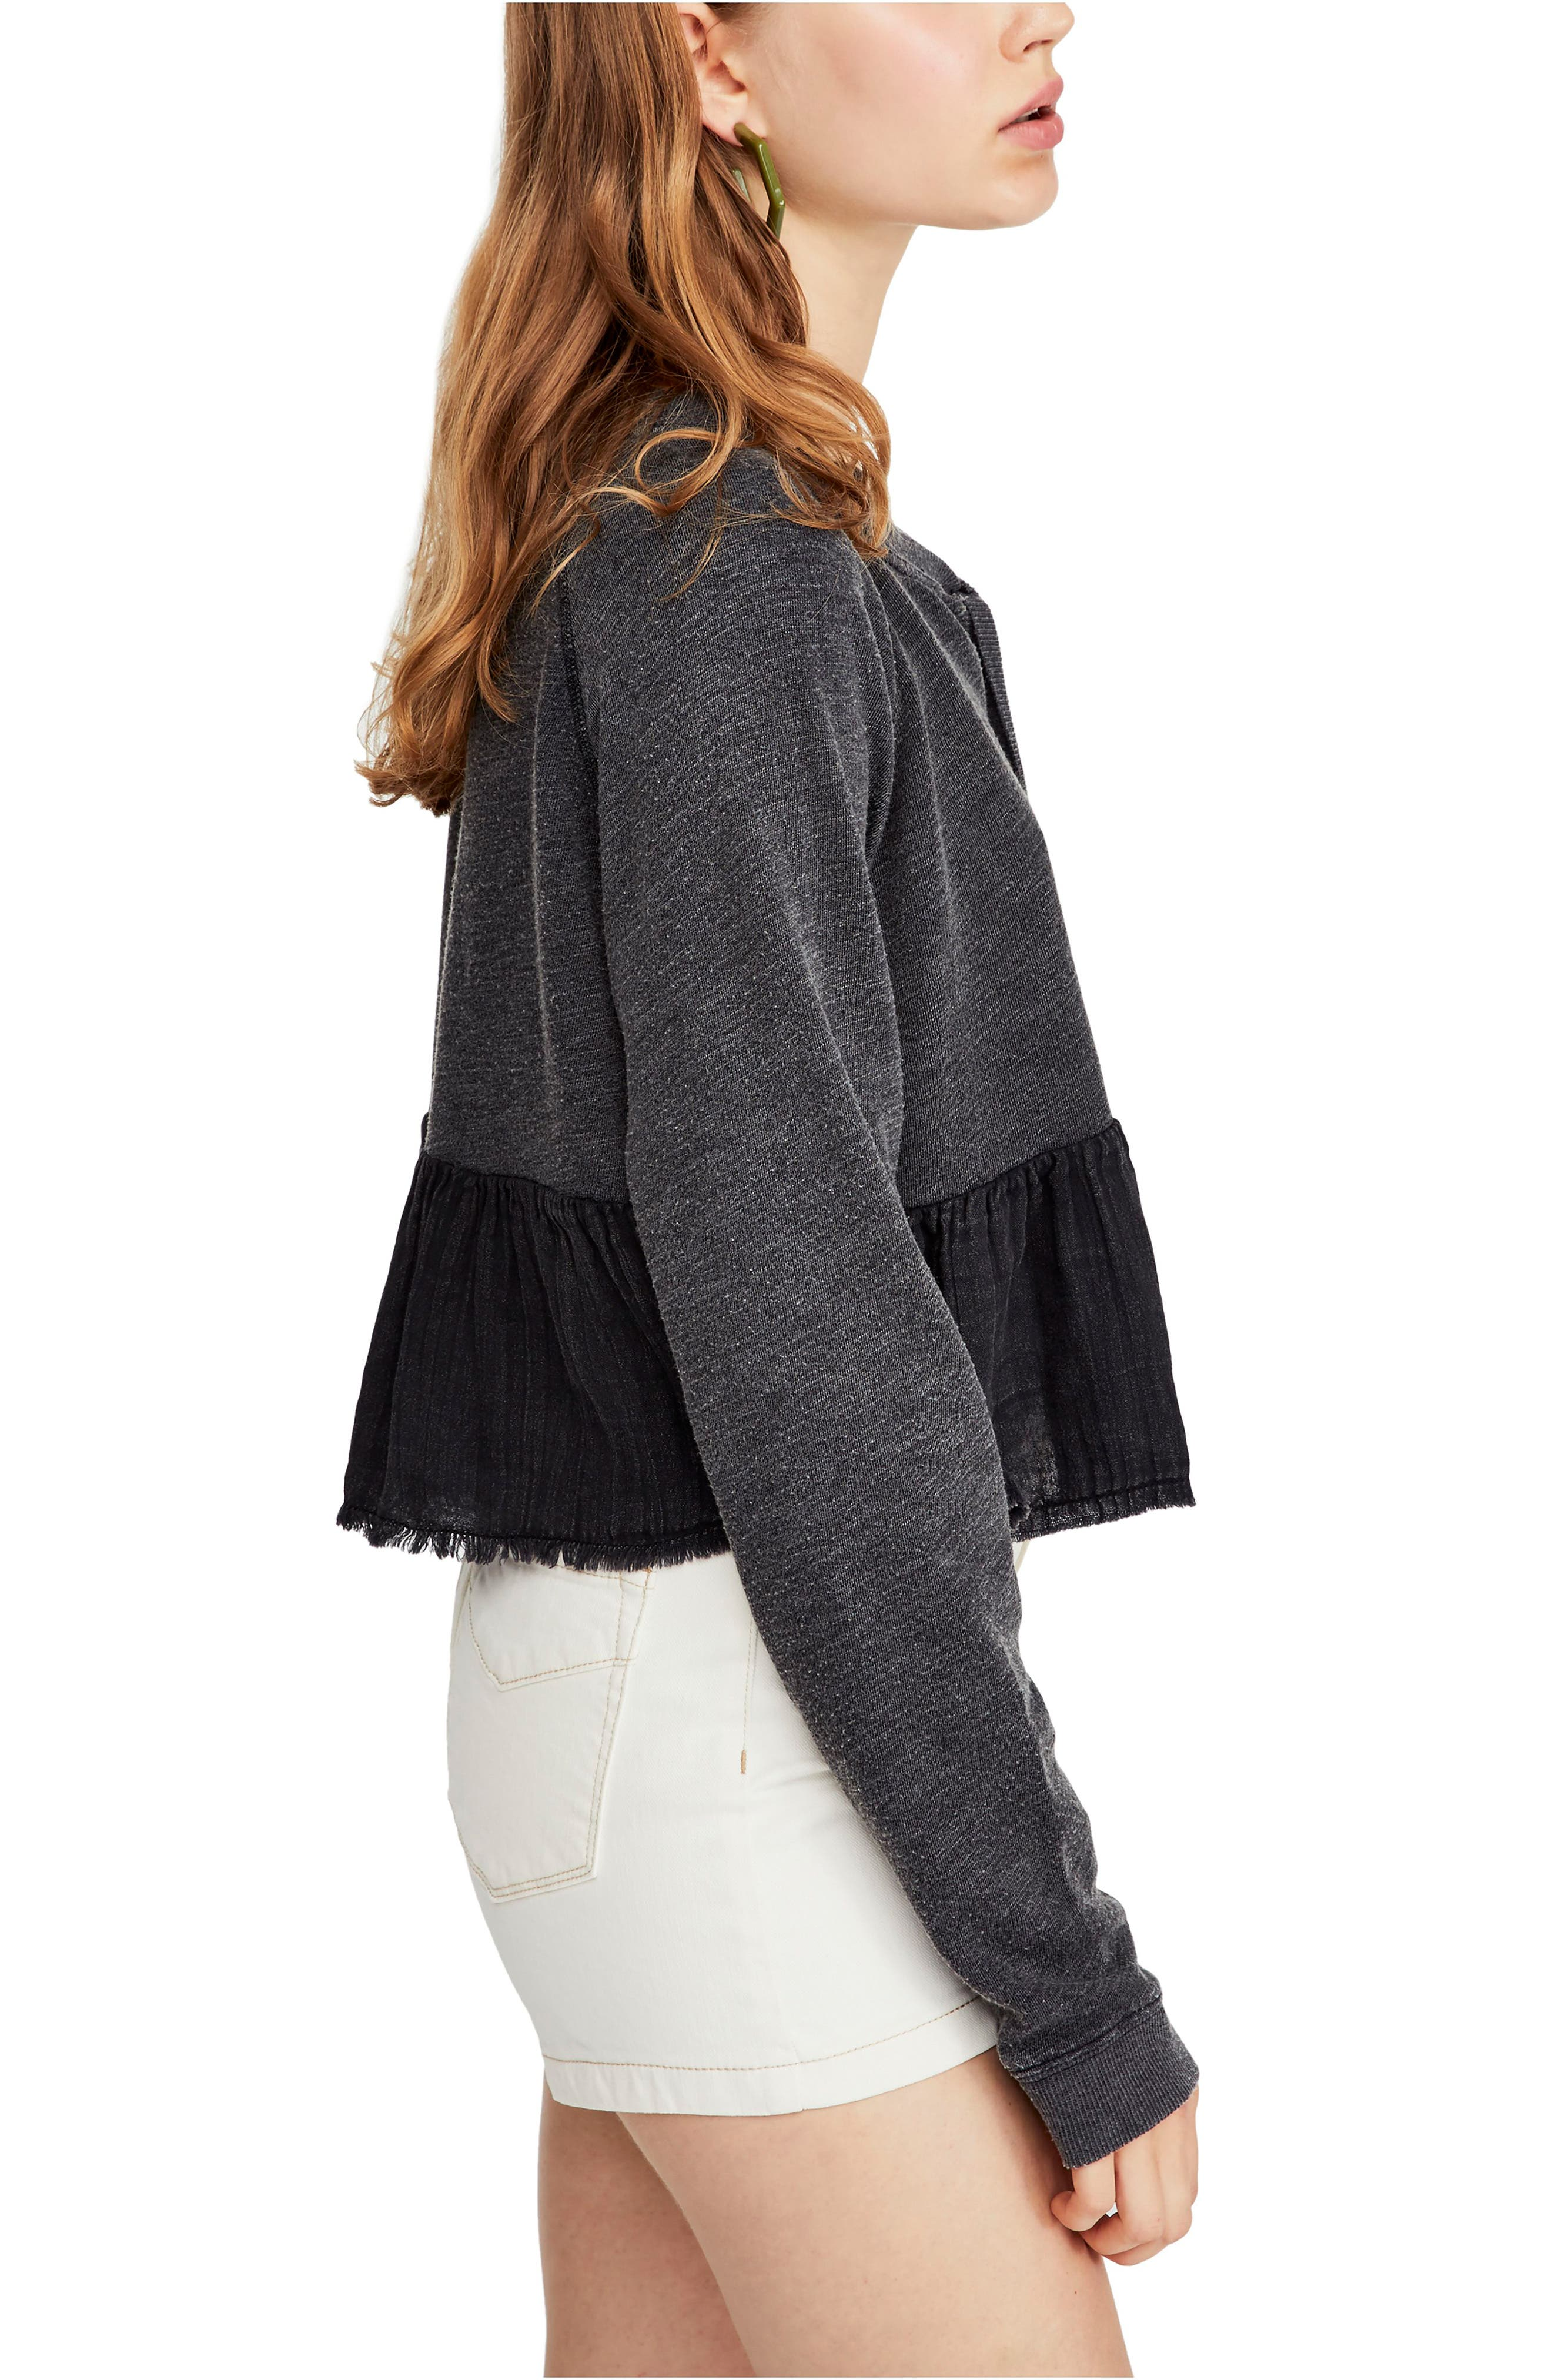 FREE PEOPLE, Sweet Jane Pullover, Alternate thumbnail 3, color, 001